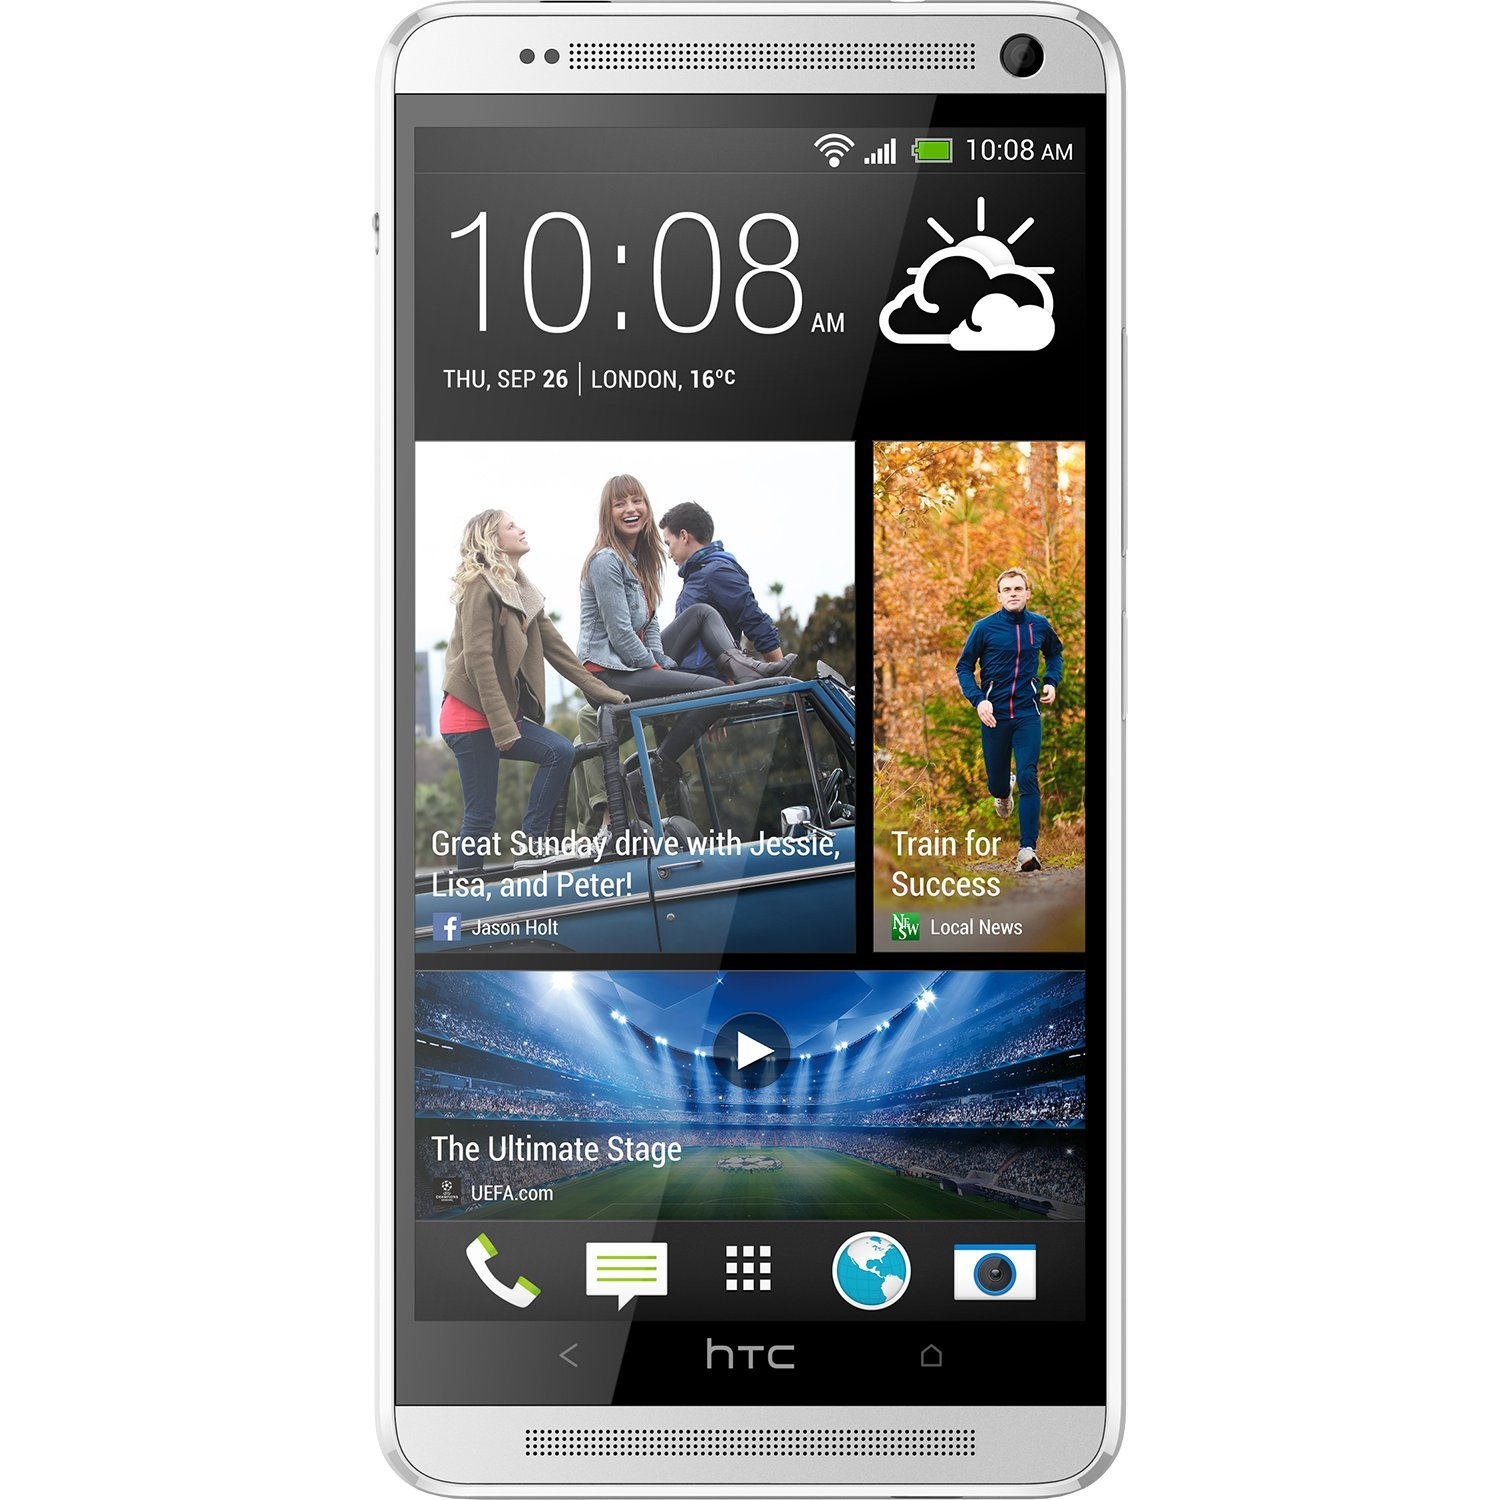 Phone Is Htc One An Android Phone amazon com htc one max 16gb lte 4g unlocked gsm android phone silver cell phones accessories